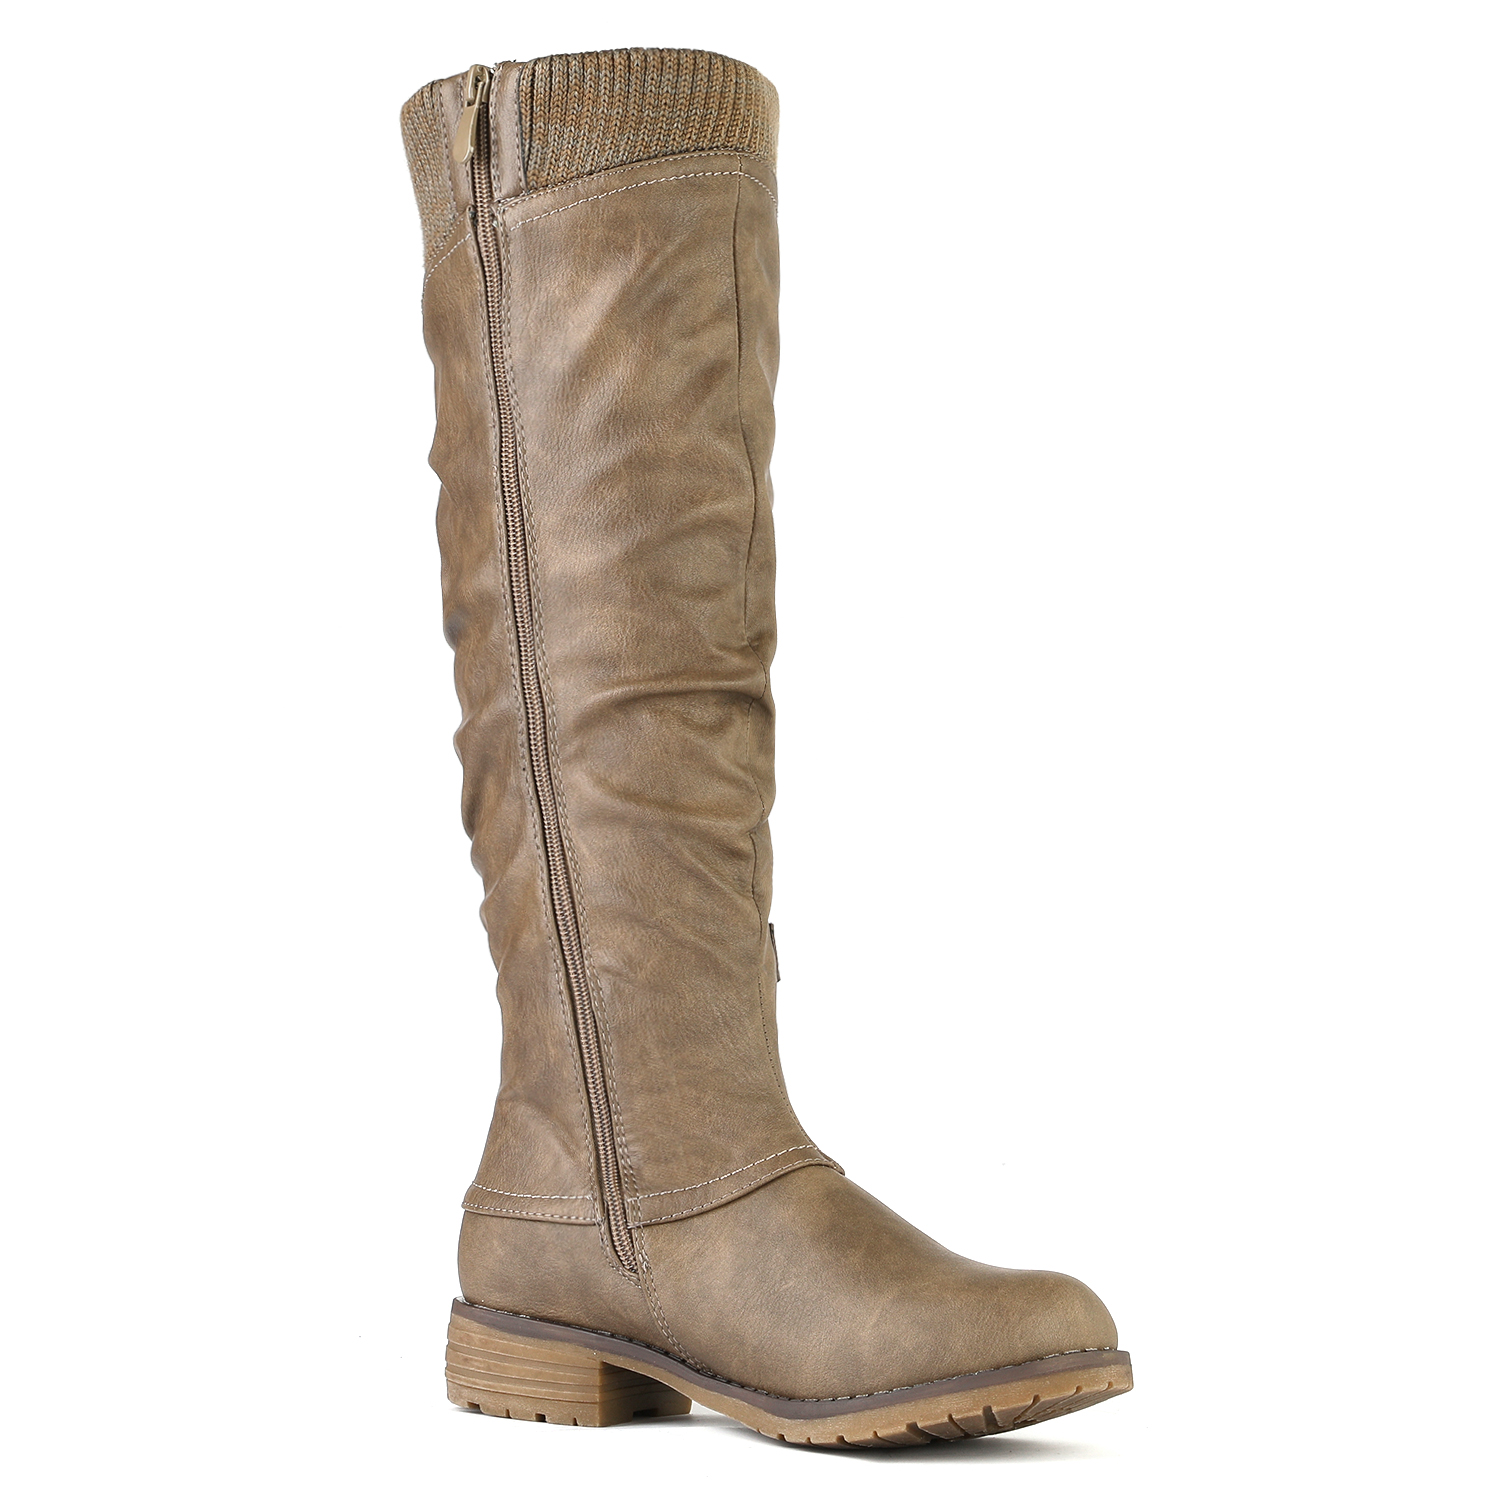 DREAM-PAIRS-Womens-DEPP-Cowgirl-Soft-PU-Leather-Combat-Knee-High-Riding-Boots thumbnail 29